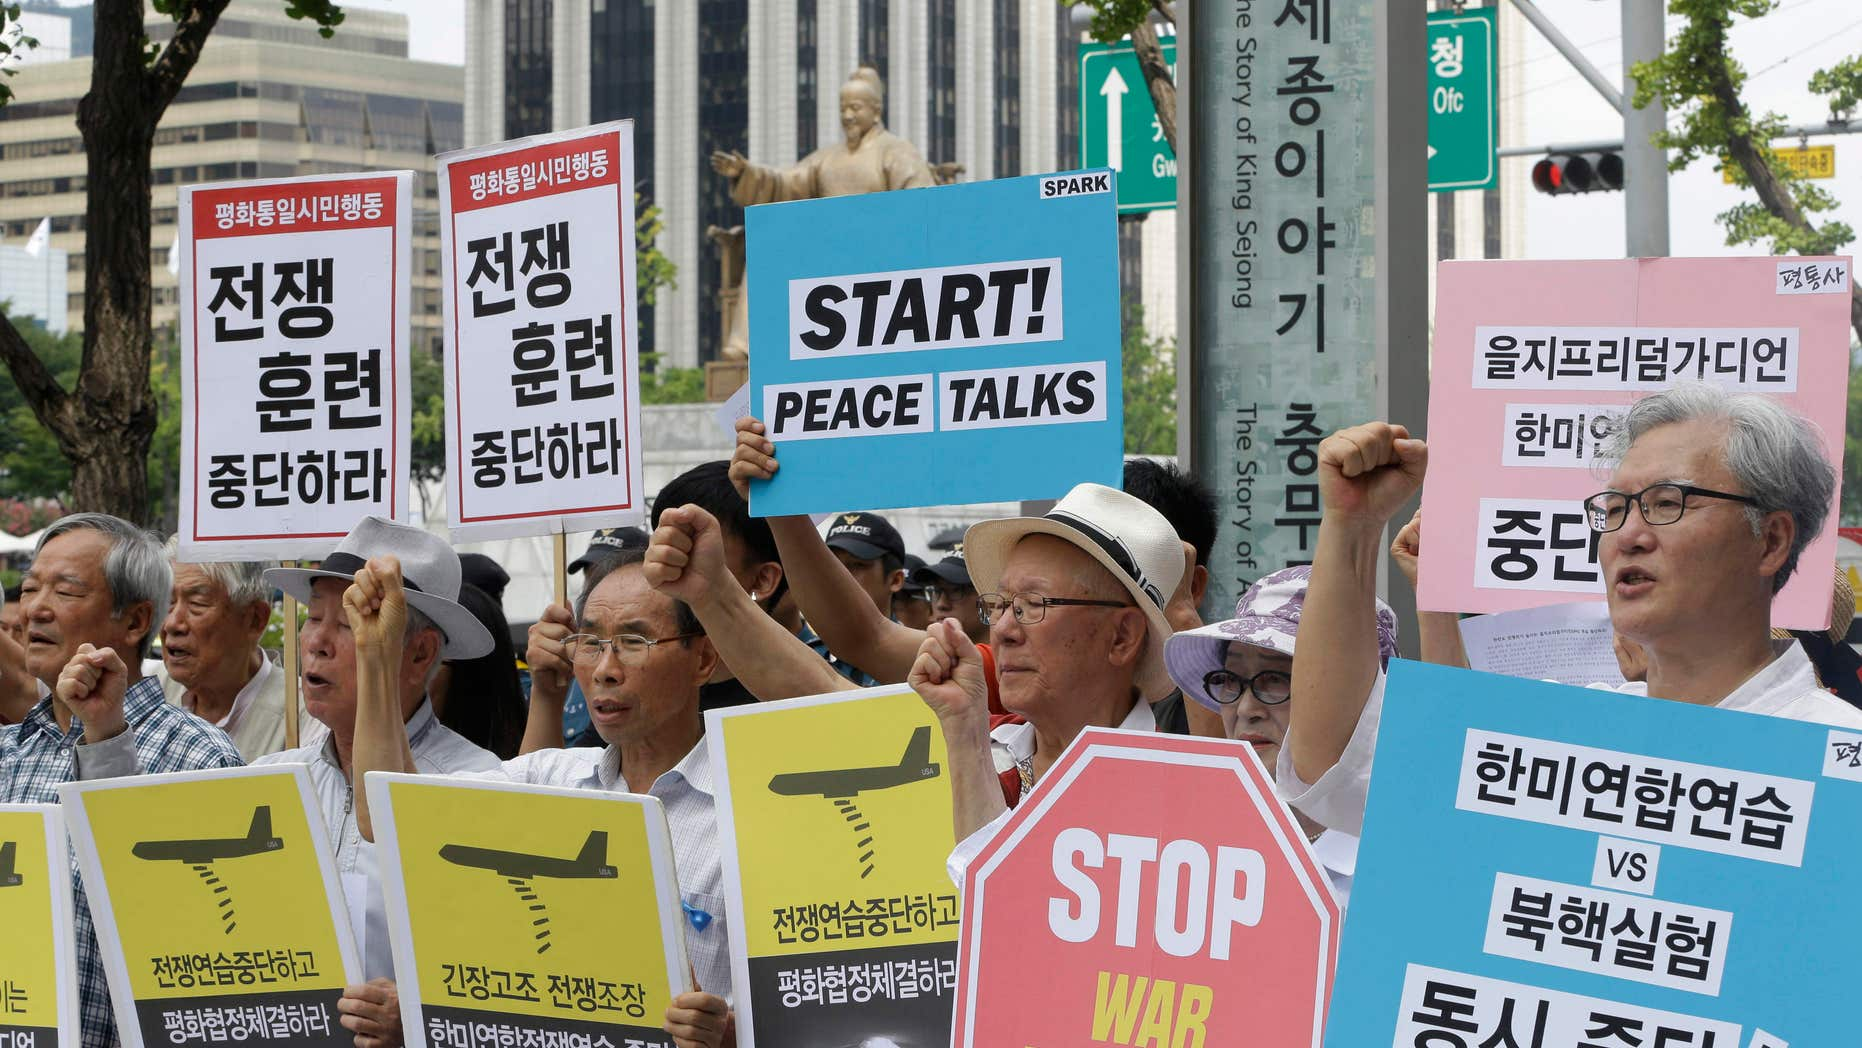 Aug. 22, 2016: South Korean protesters shout slogans during a rally demanding to stop the joint military exercises, Ulchi Freedom Guardian, or UFG, between the U.S. and South Korea near U.S. Embassy in Seoul, South Korea.